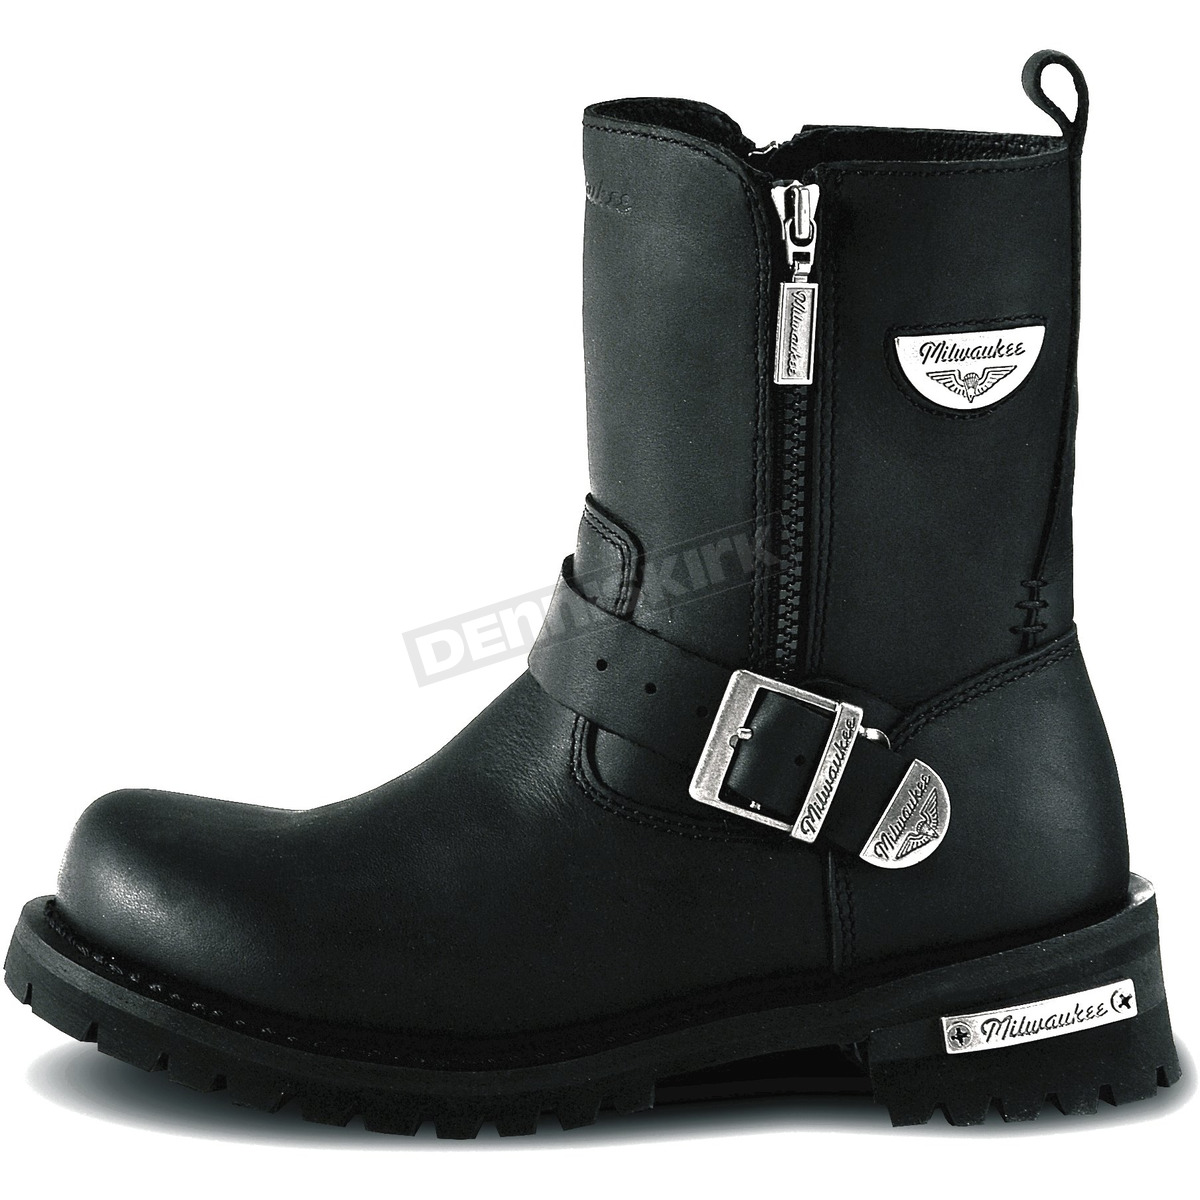 8b8820d637c1 Milwaukee Motorcycle Clothing Co. Afterburner Boots - MB40716 Harley ...